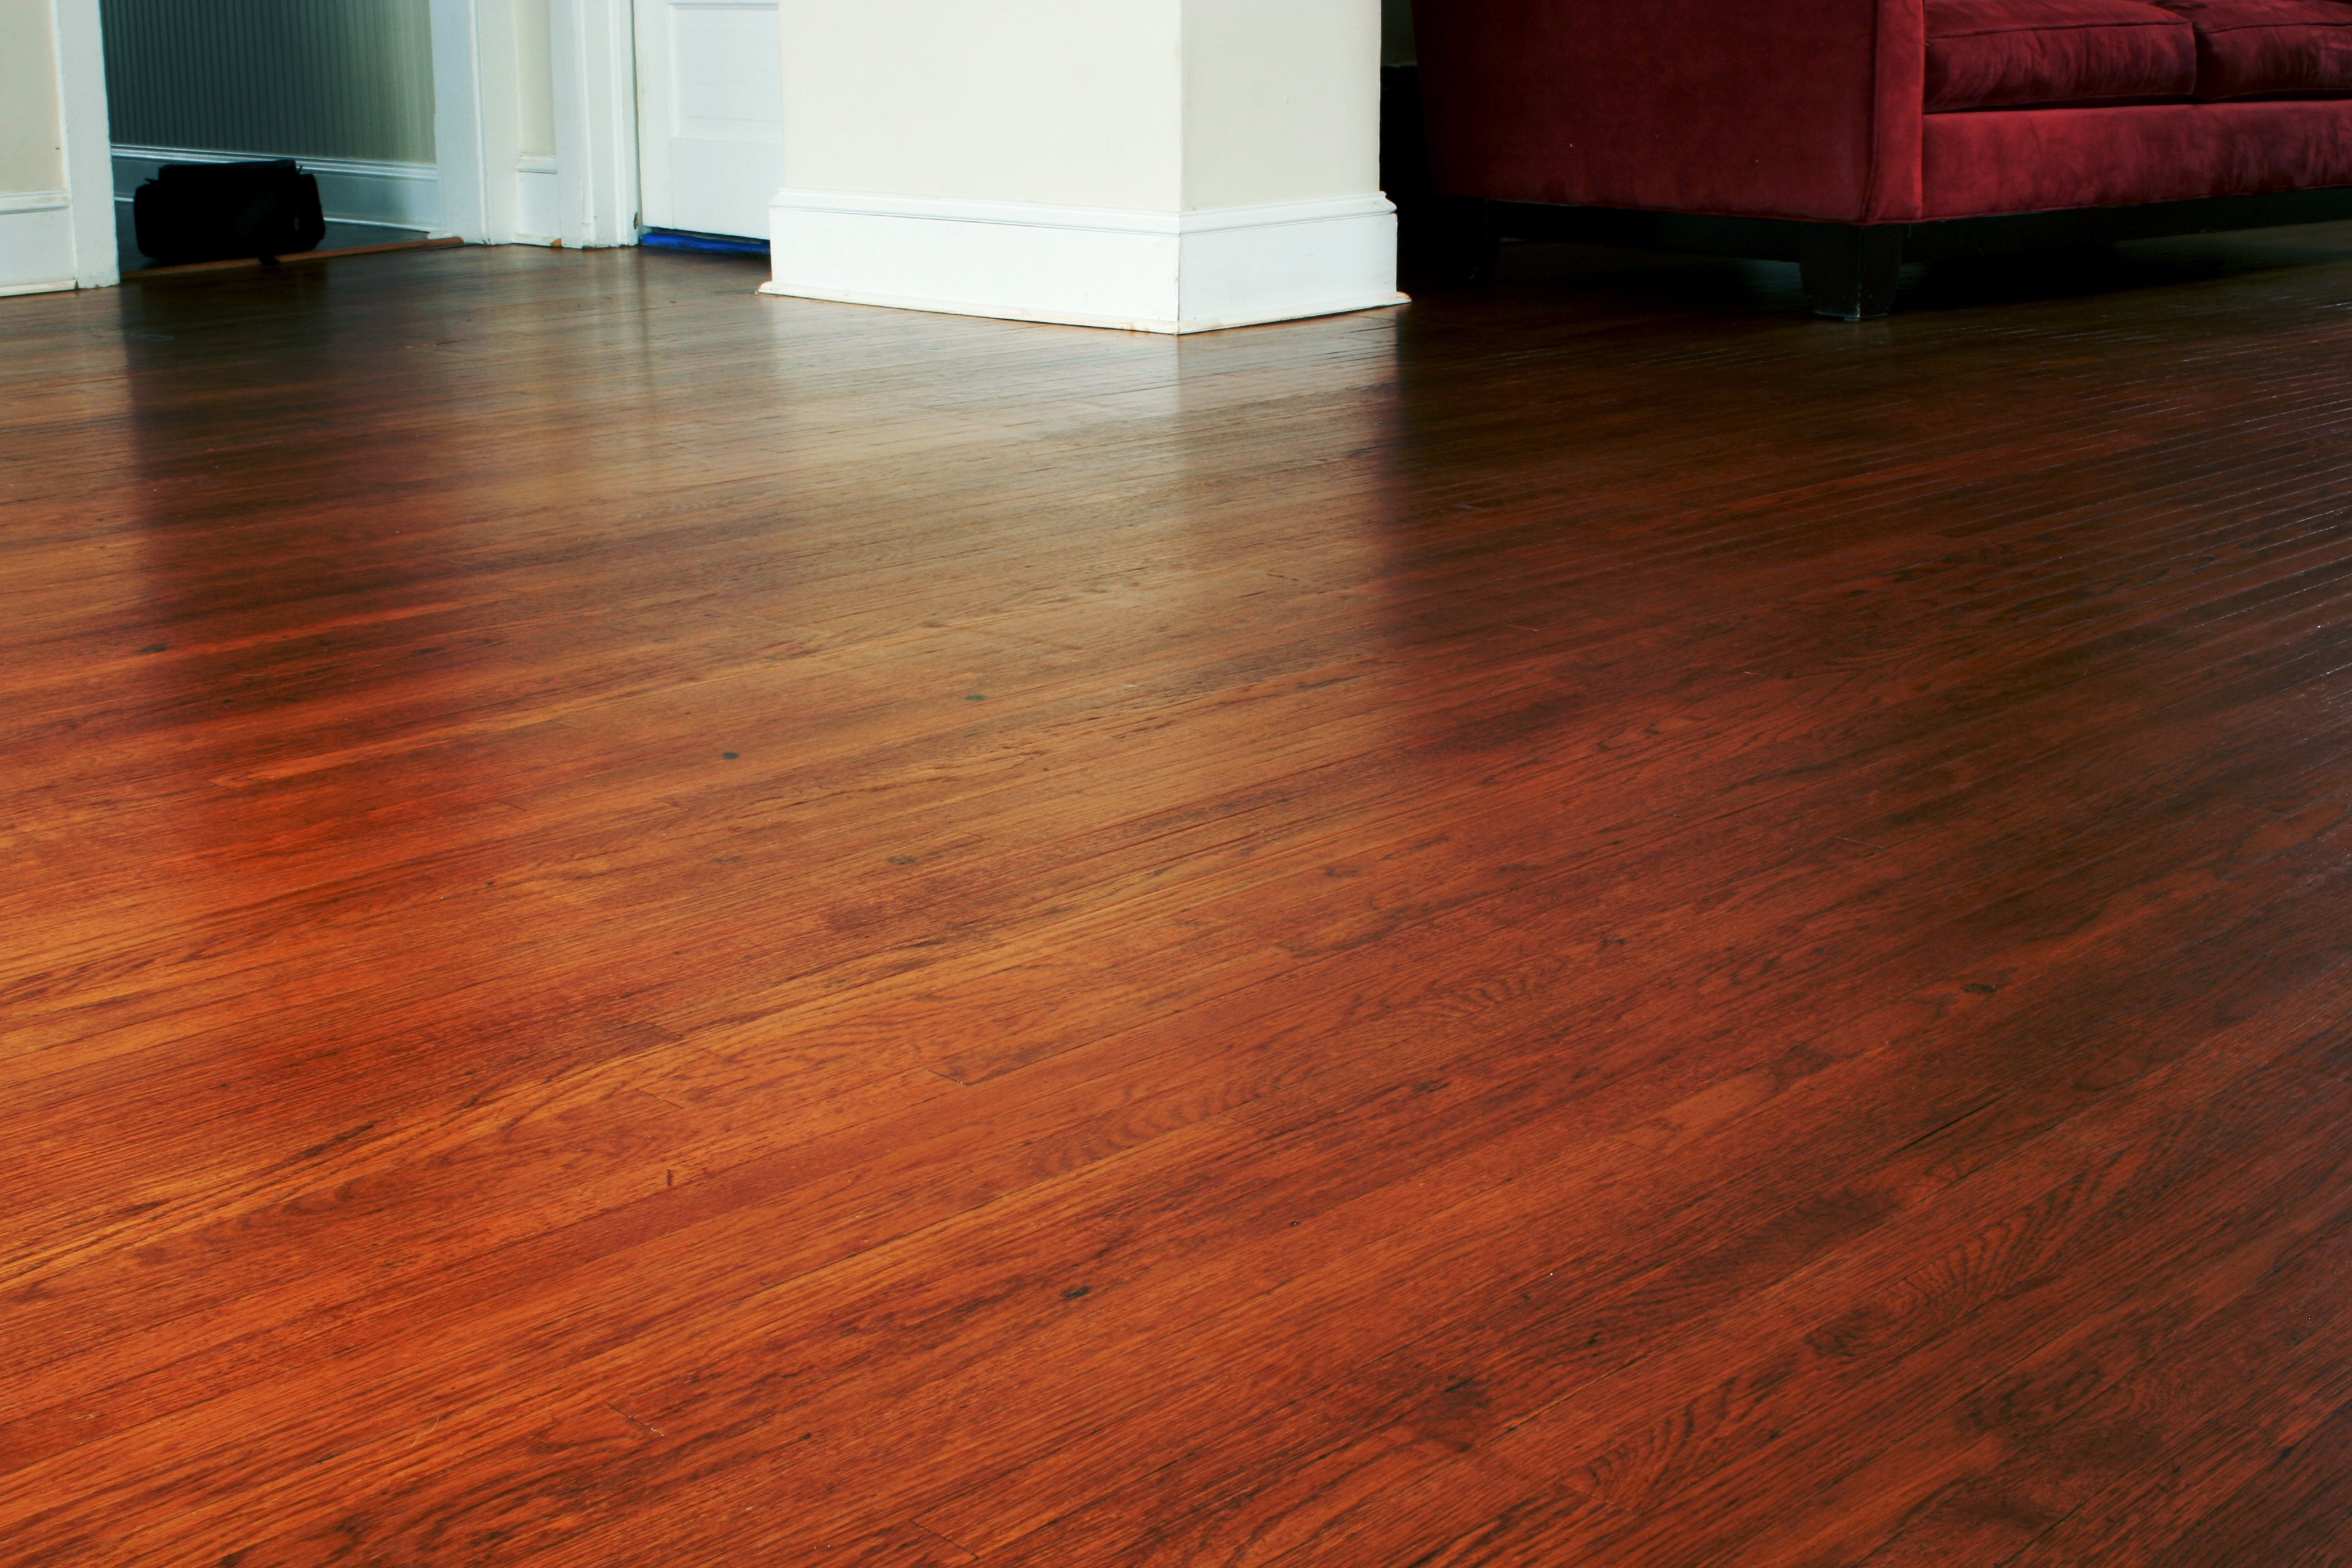 fix refinishing hardwood floors without sanding of how to refinish wood floors step by step how to diagnose and repair pertaining to how to refinish wood floors step by step how to diagnose and repair sloping floors homeadvisor